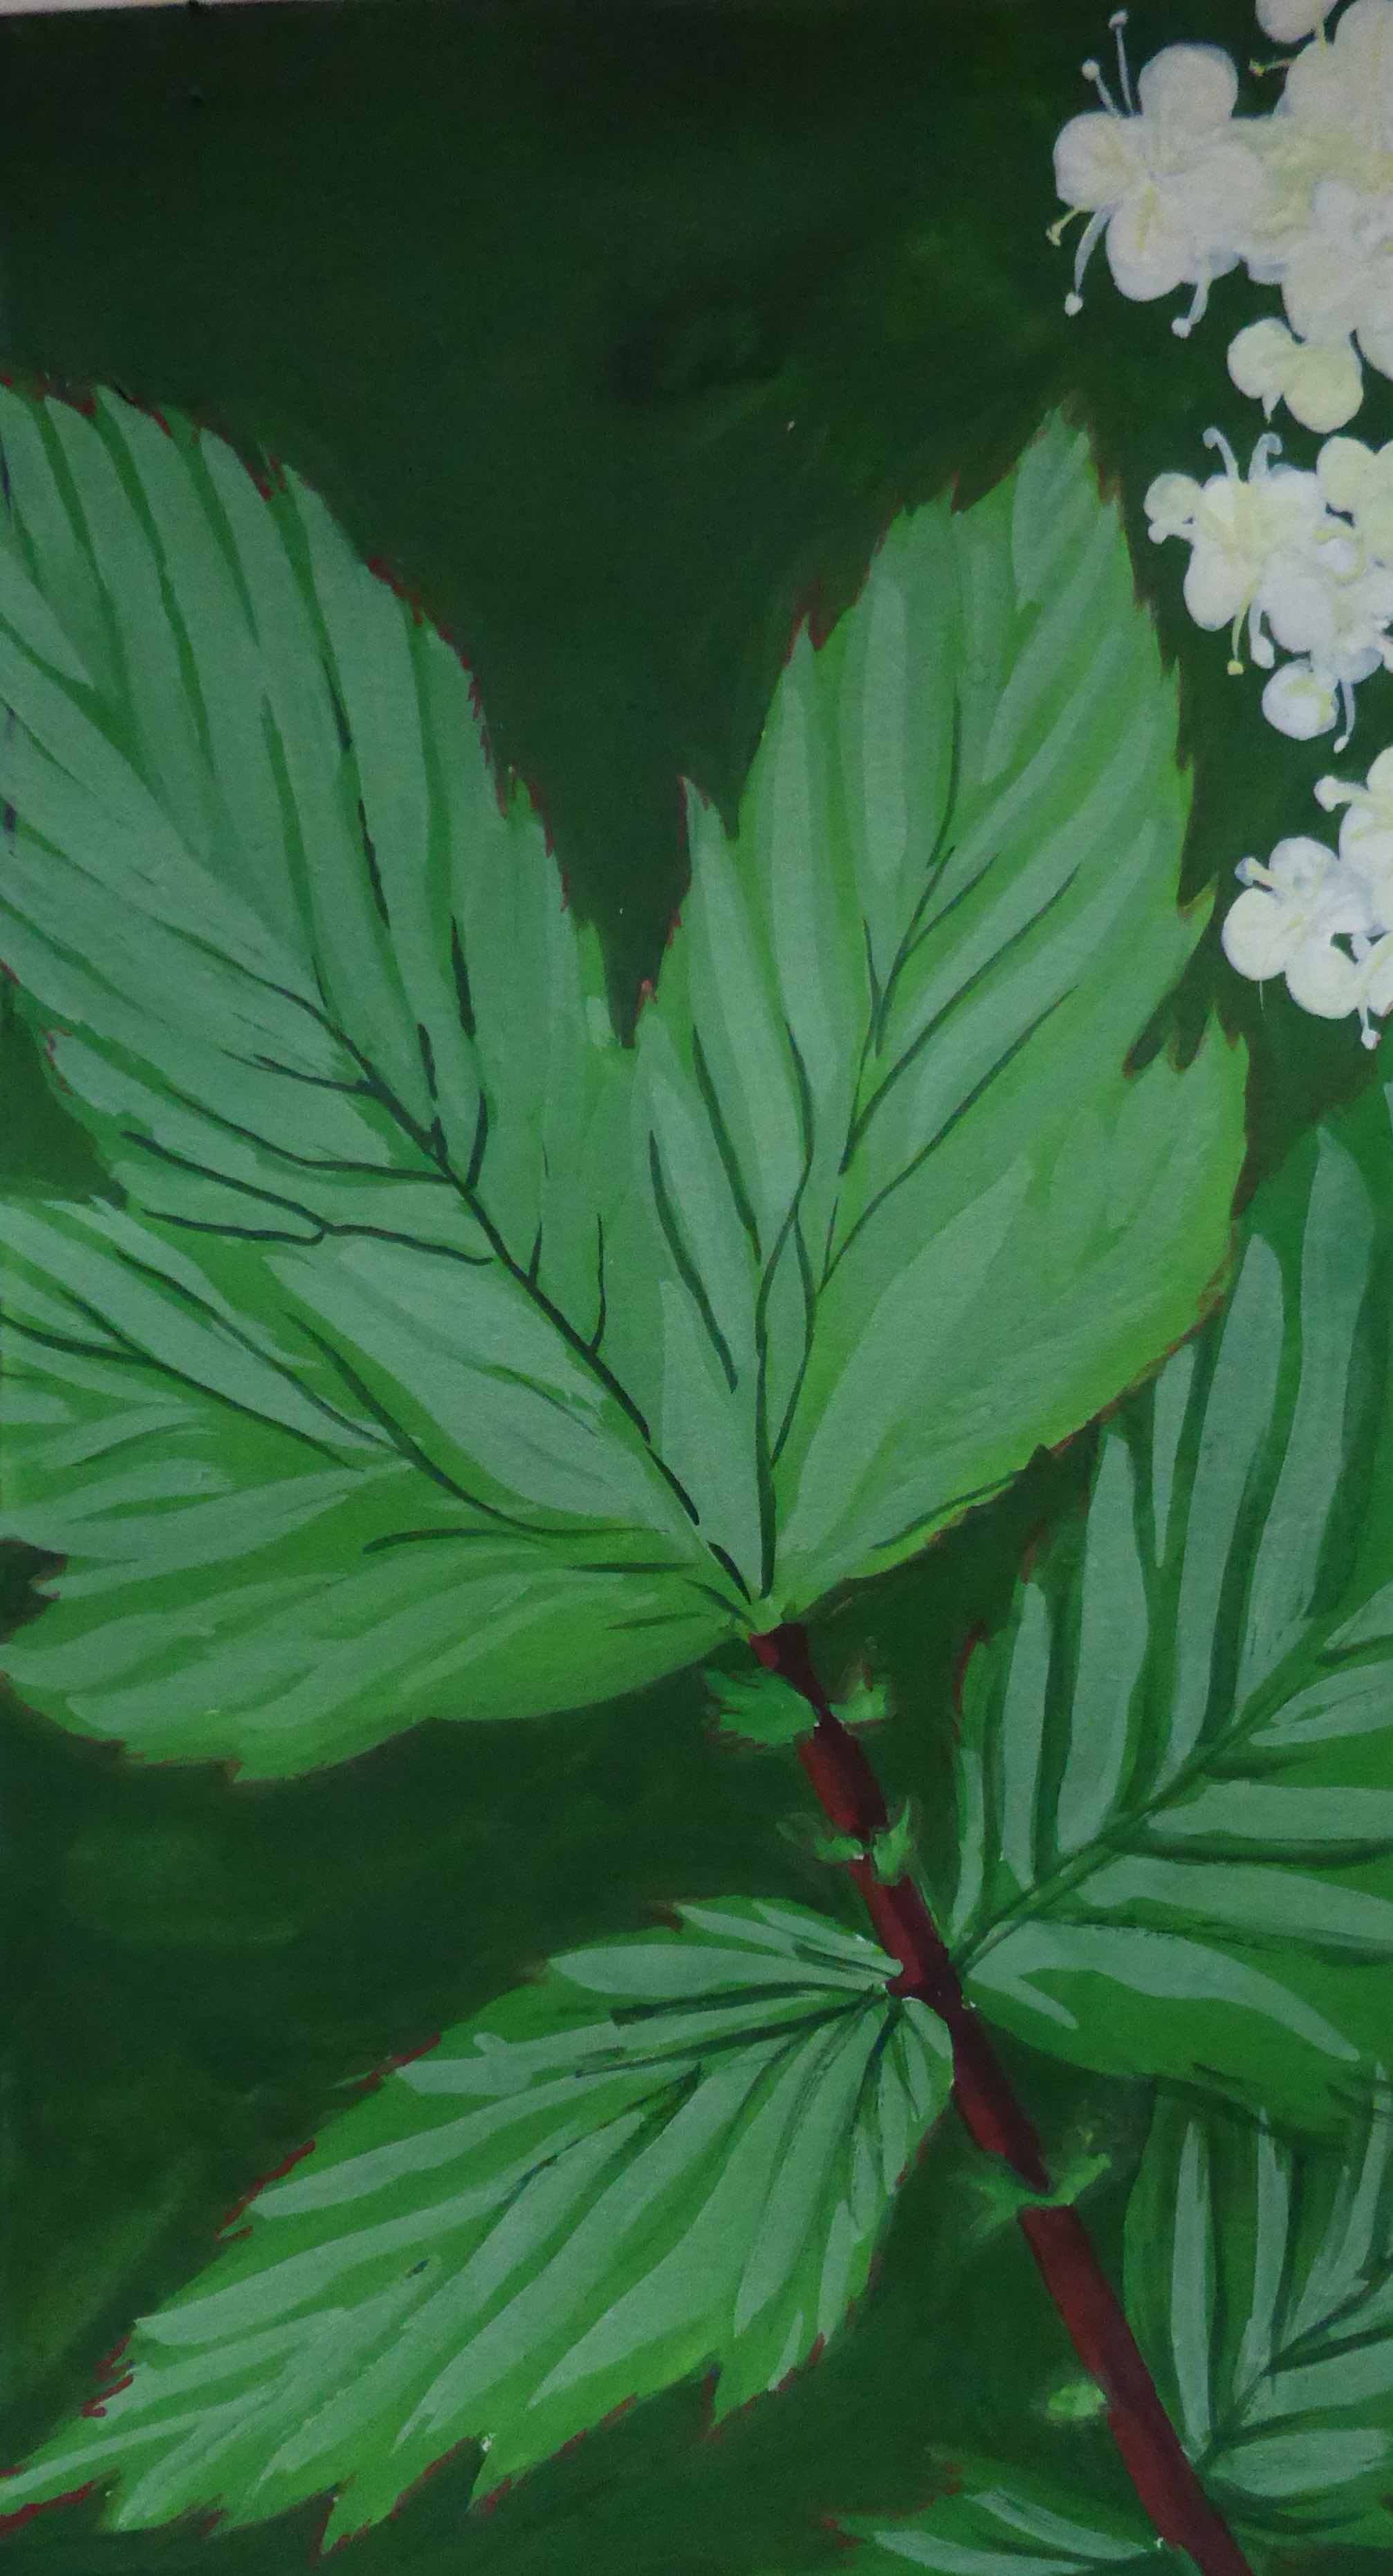 Detail from a sketch of Meadowsweet for Dublin Canvas public art project (gouache), 2017.